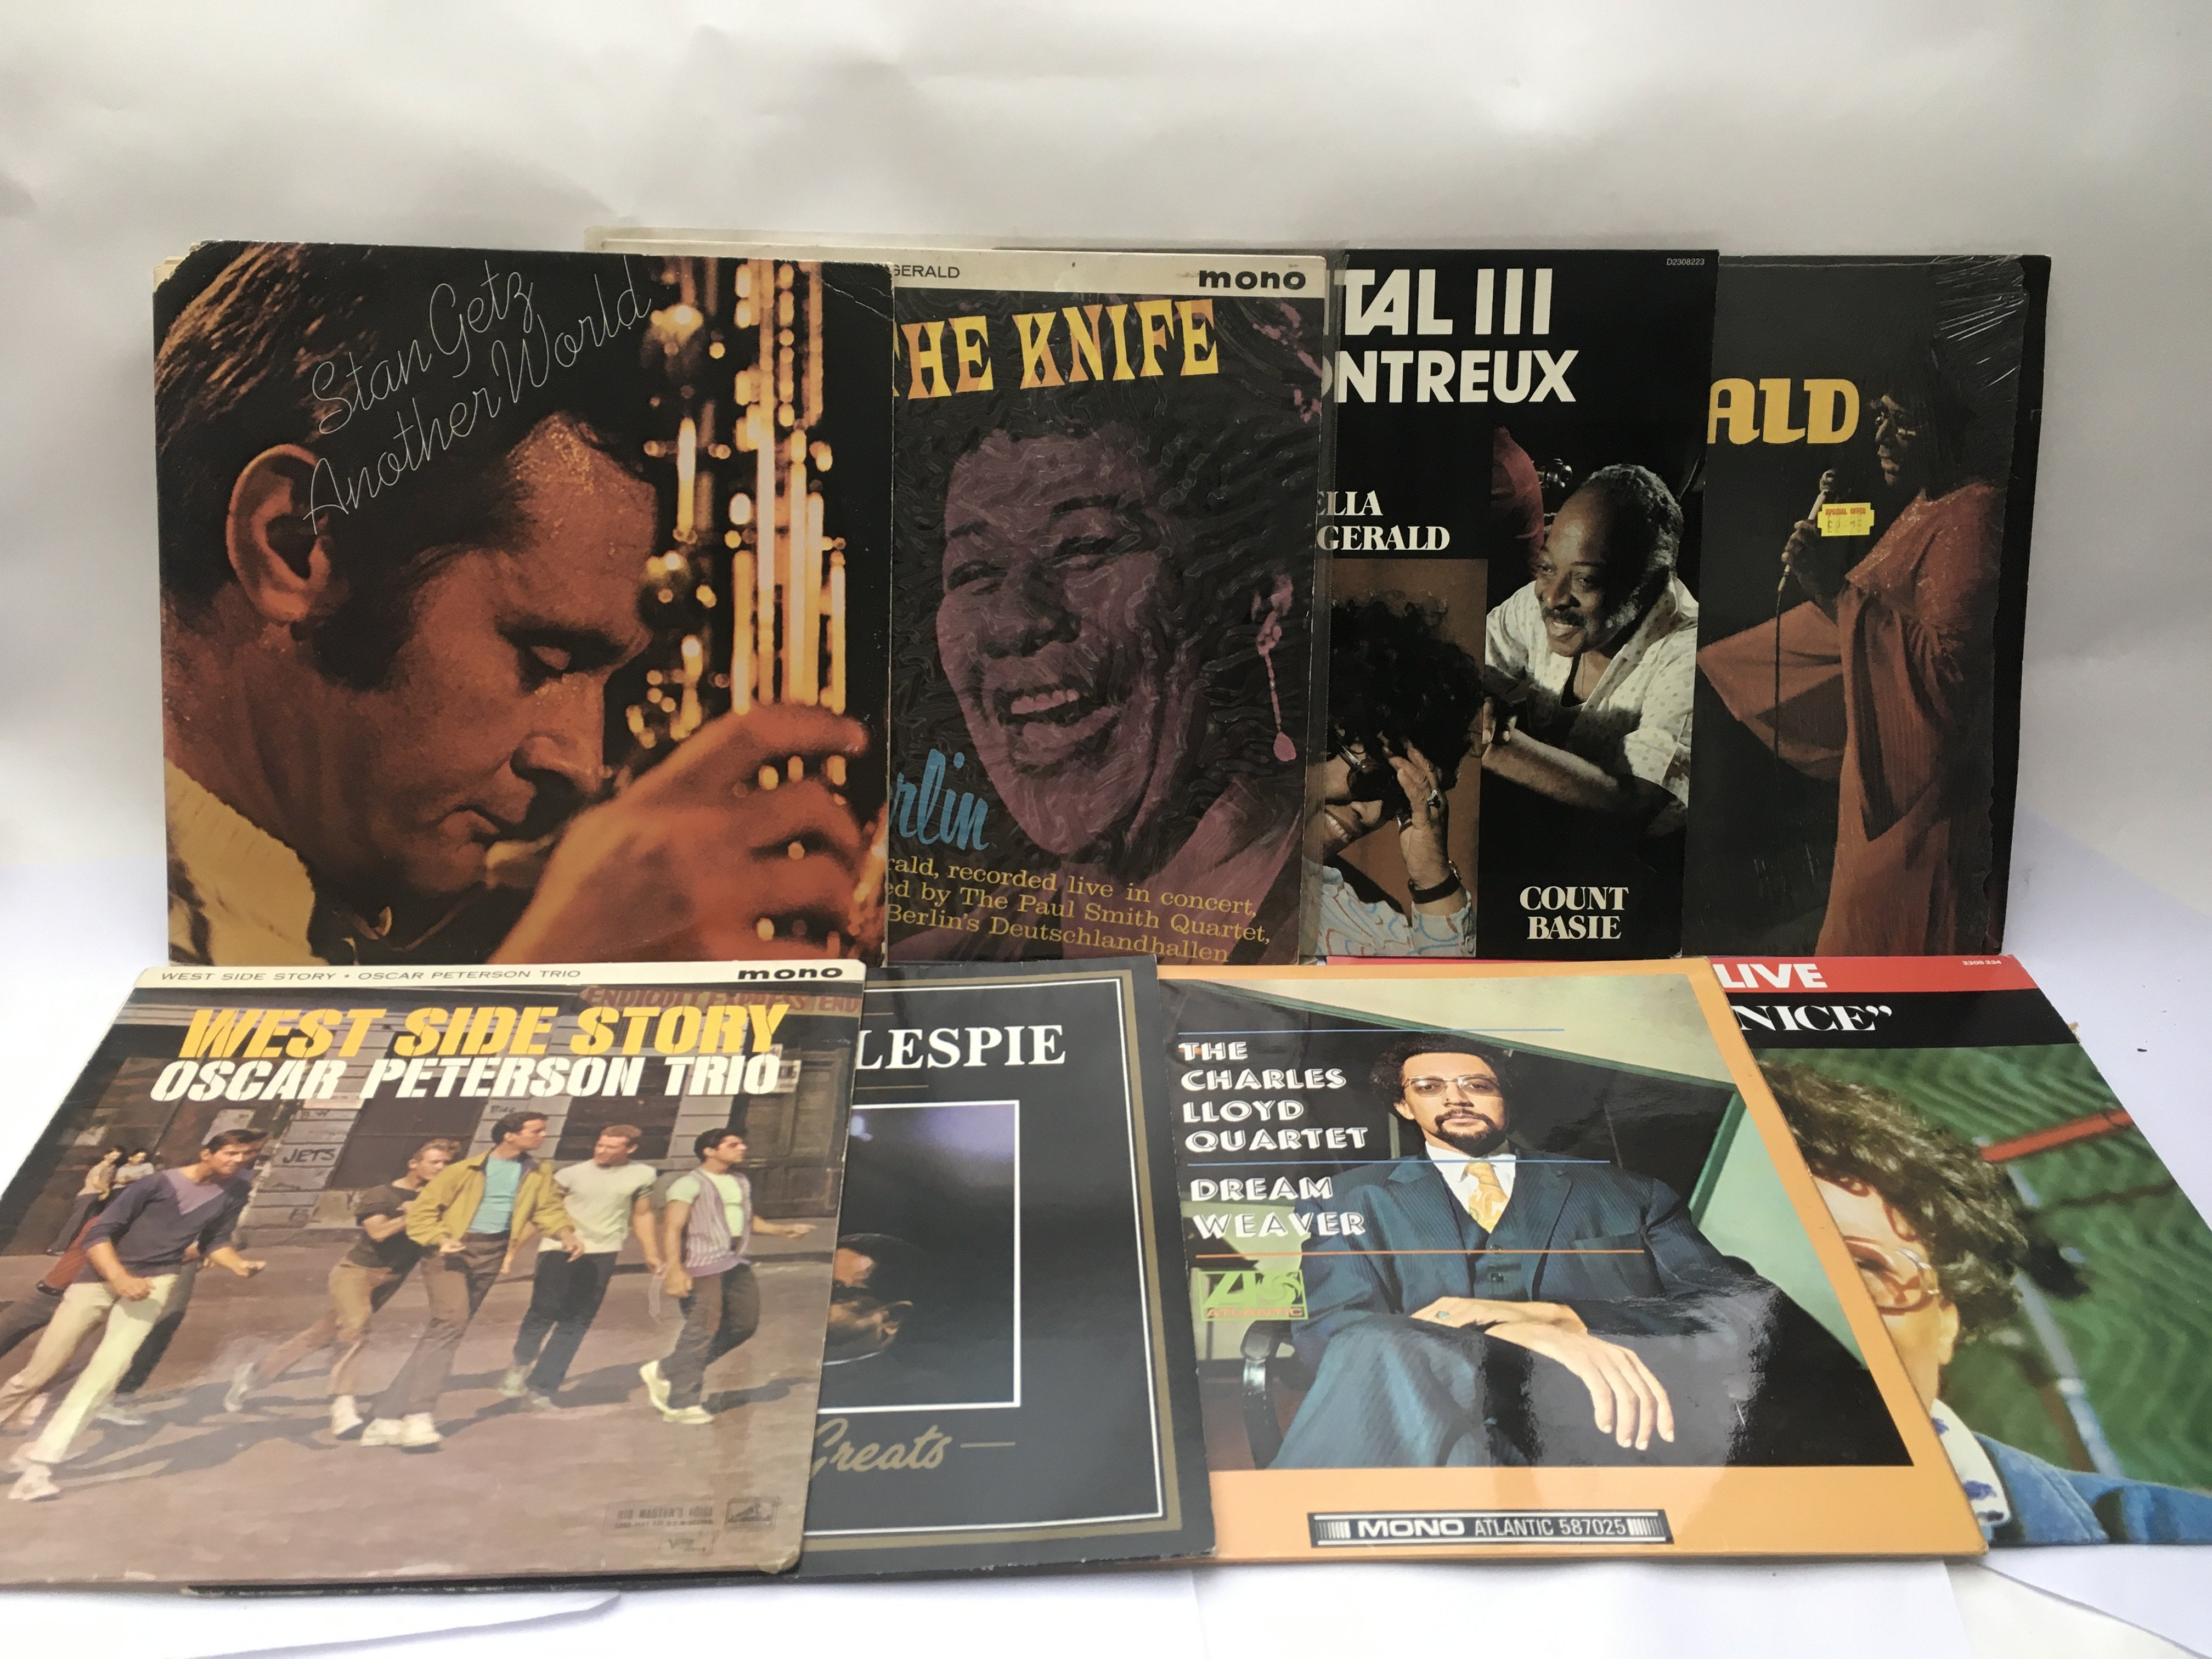 Fifteen jazz LPs by various artists including Stan